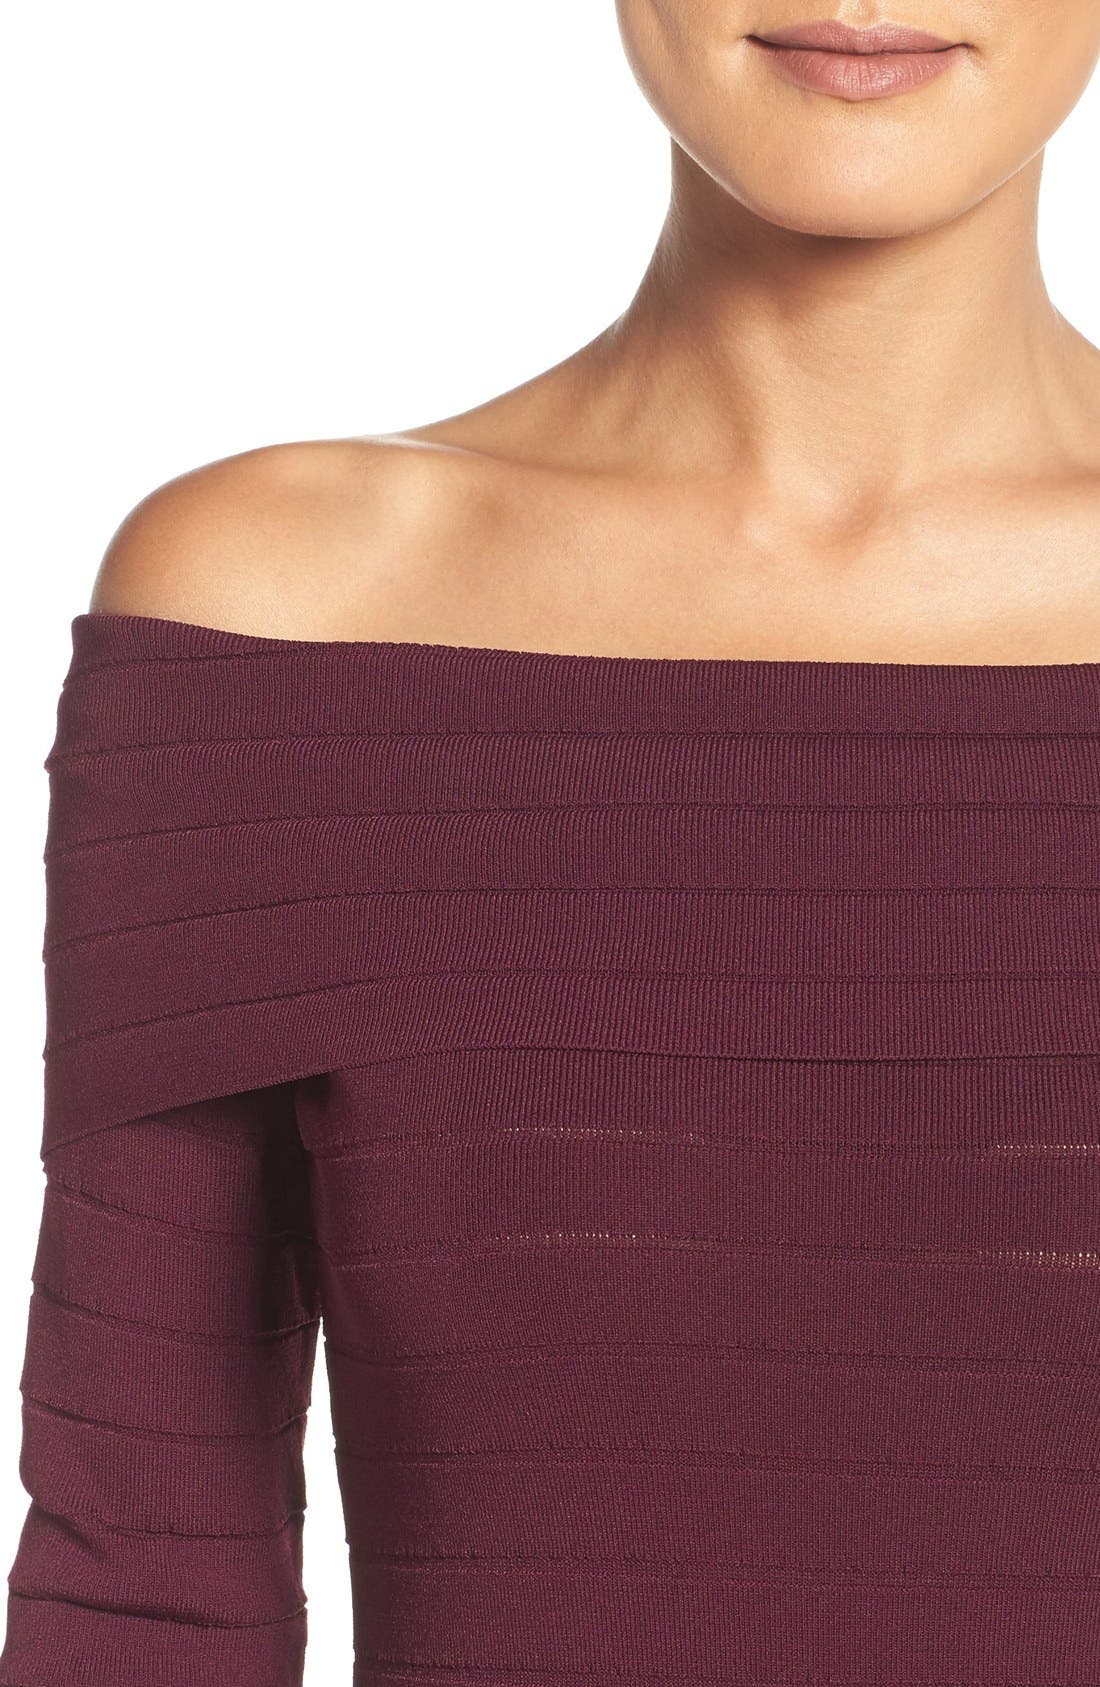 Bandage Midi Dress,                             Alternate thumbnail 33, color,